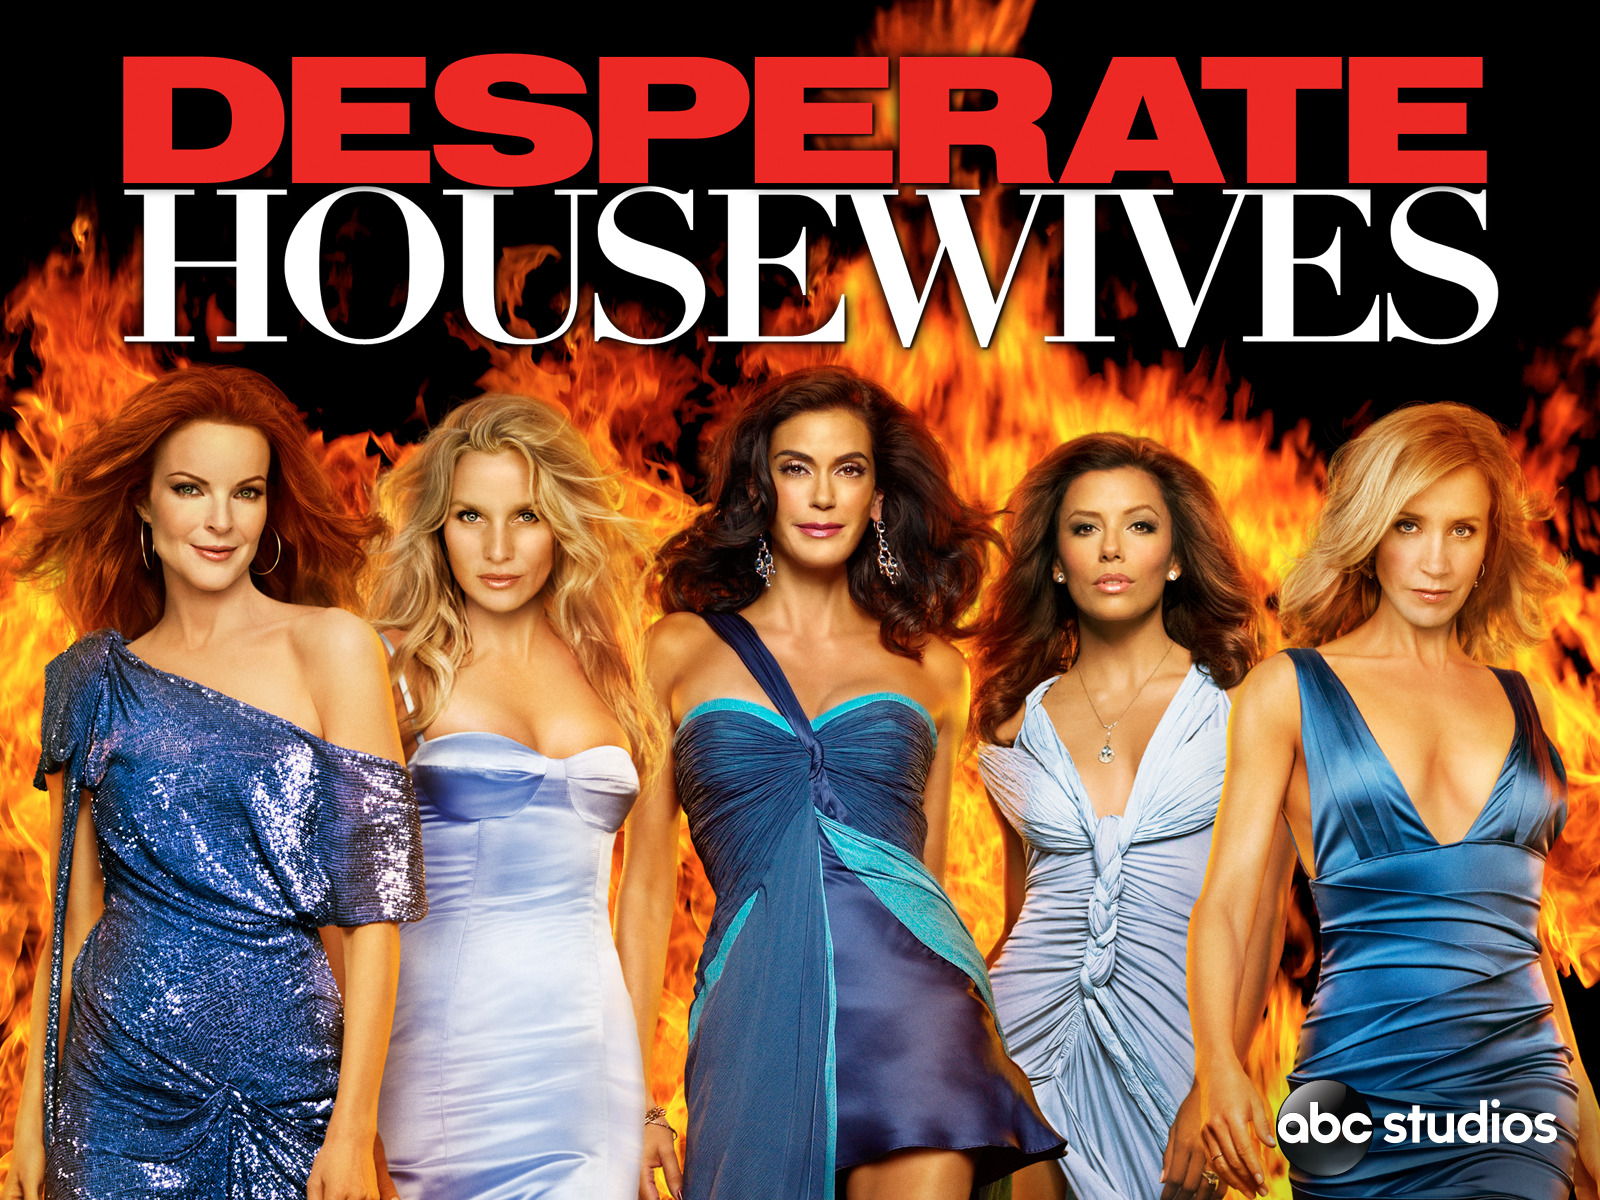 Desperate Housewives Season 8 : Click the link below to see what others say about desperate housewives: